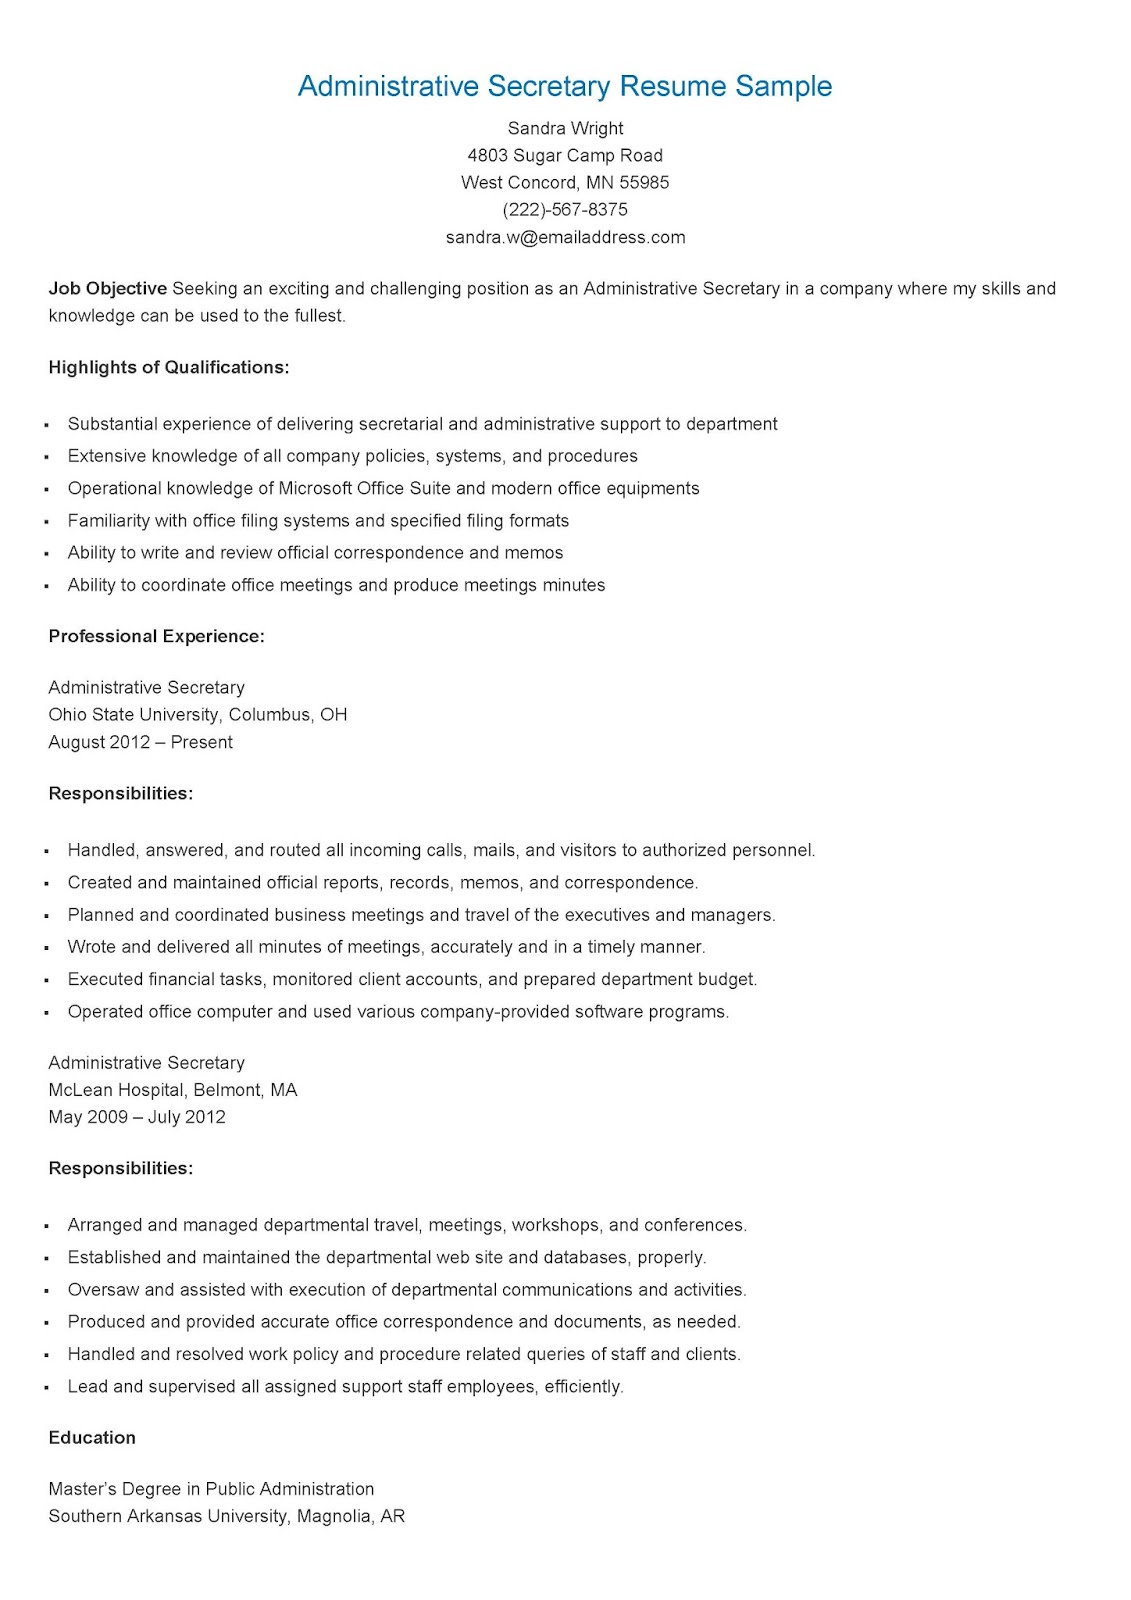 Sanitation Worker Resume Resume Samples Administrative Secretary Resume Sample